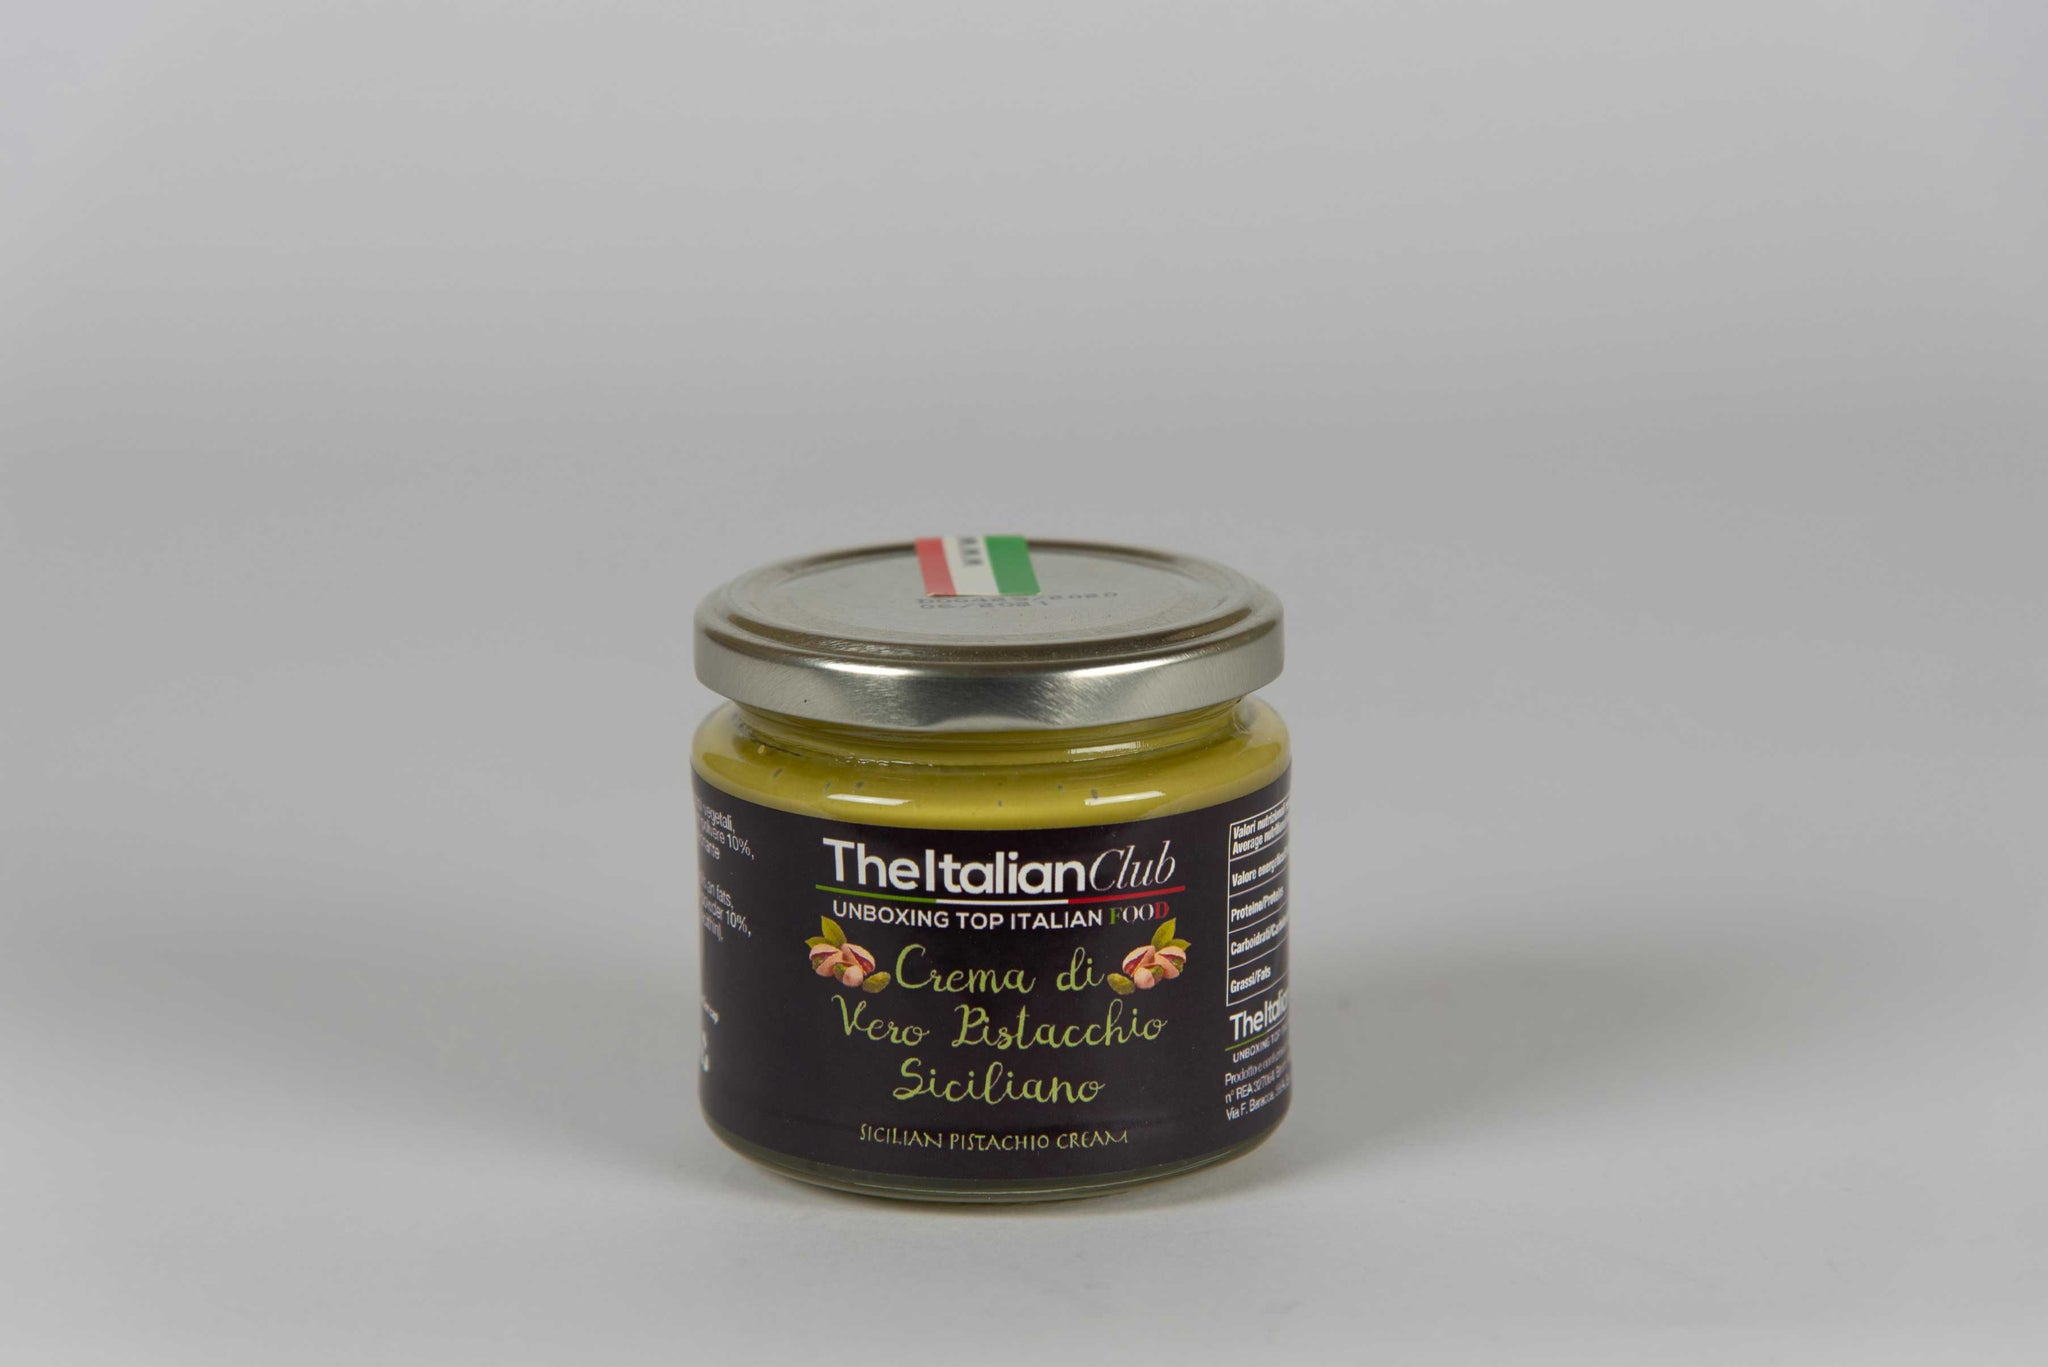 Cream of Sicilian Pistachio 190 gr - The Italian Club - The Italian Club